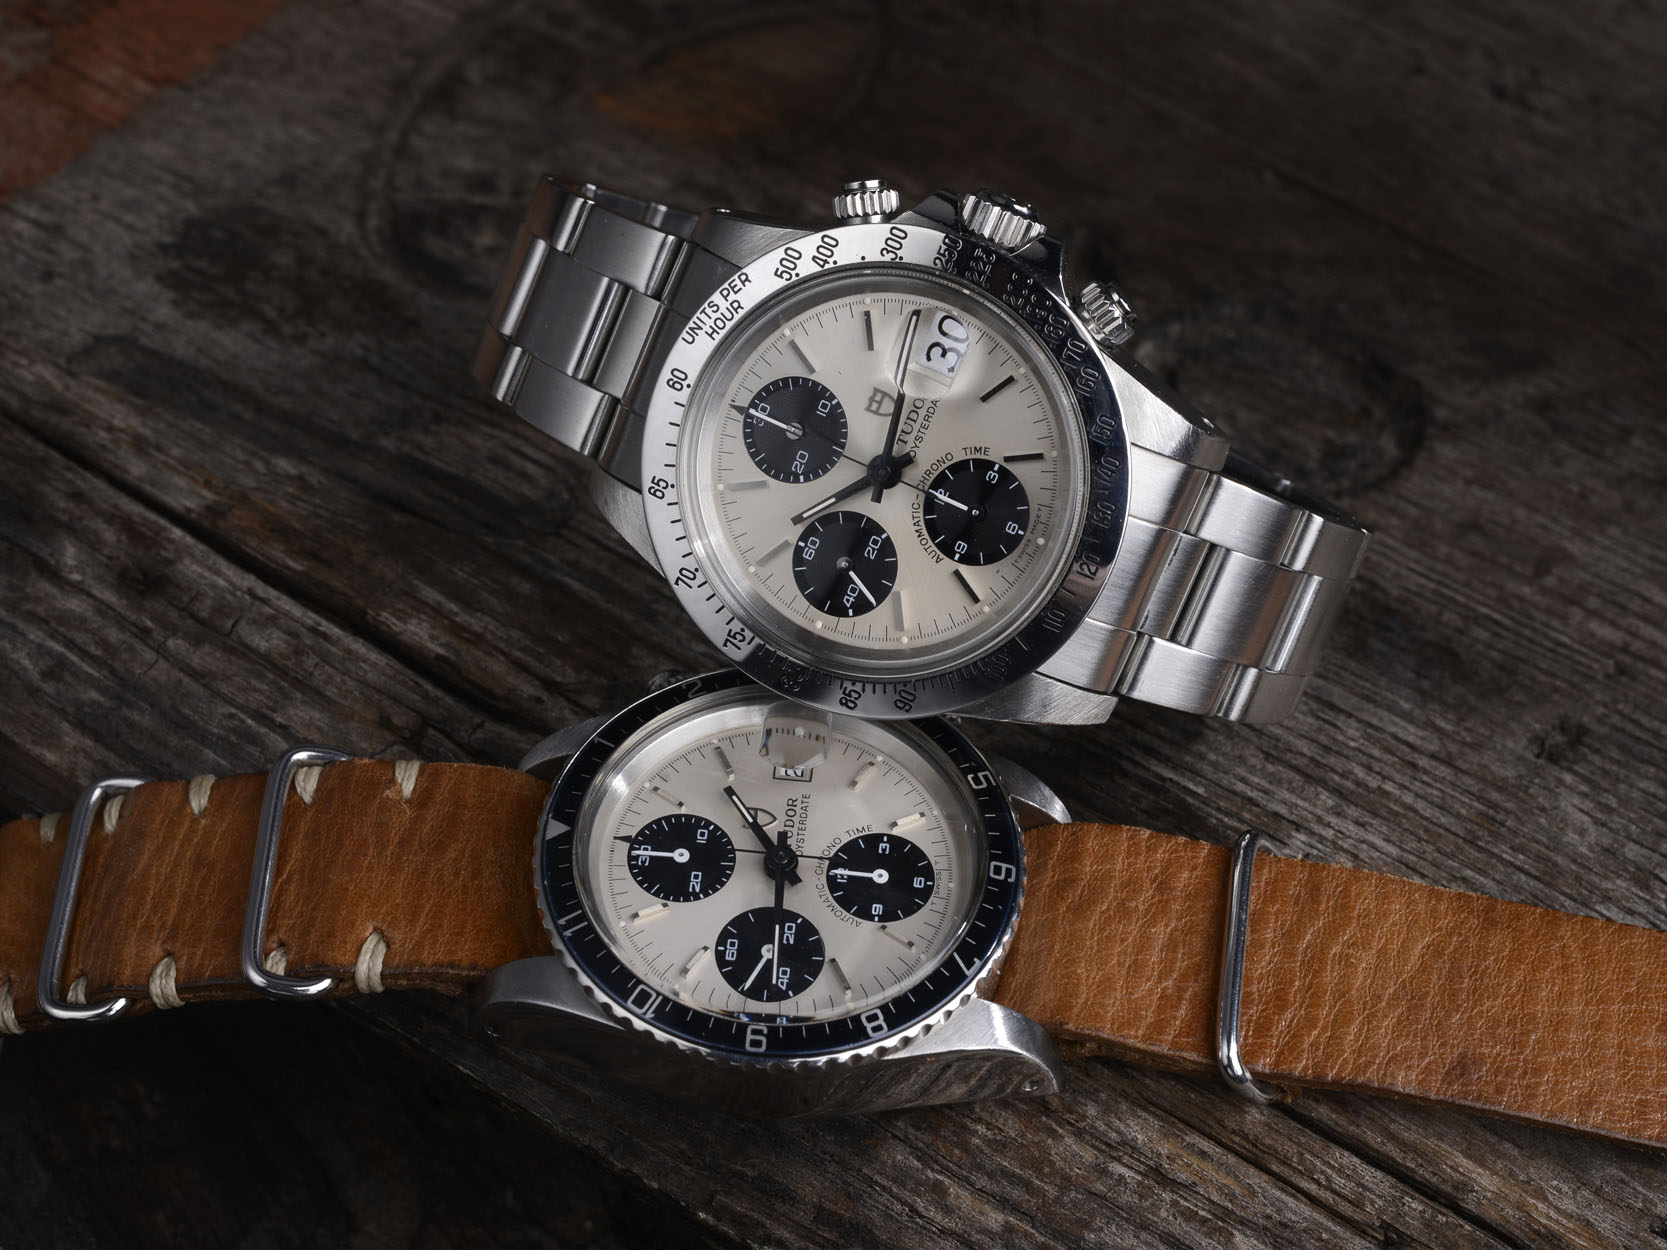 The Tudor Big Block Chronograph  79180